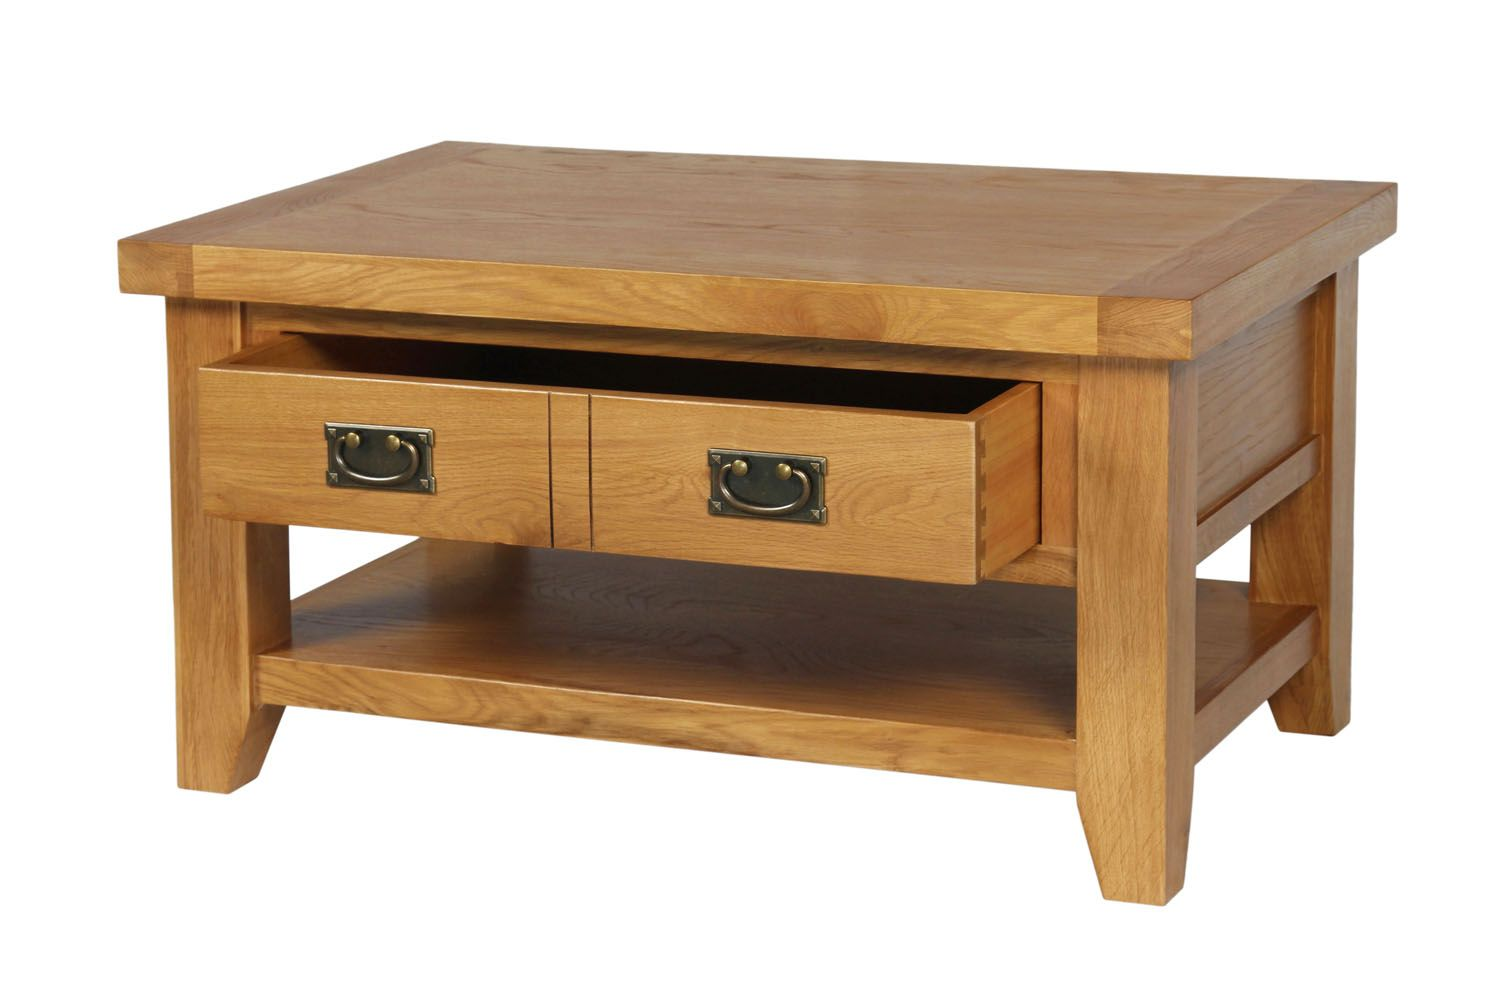 Country Oak Coffee Table With Drawer Shelf Free Delivery Top - Oak coffee table with drawers and shelf